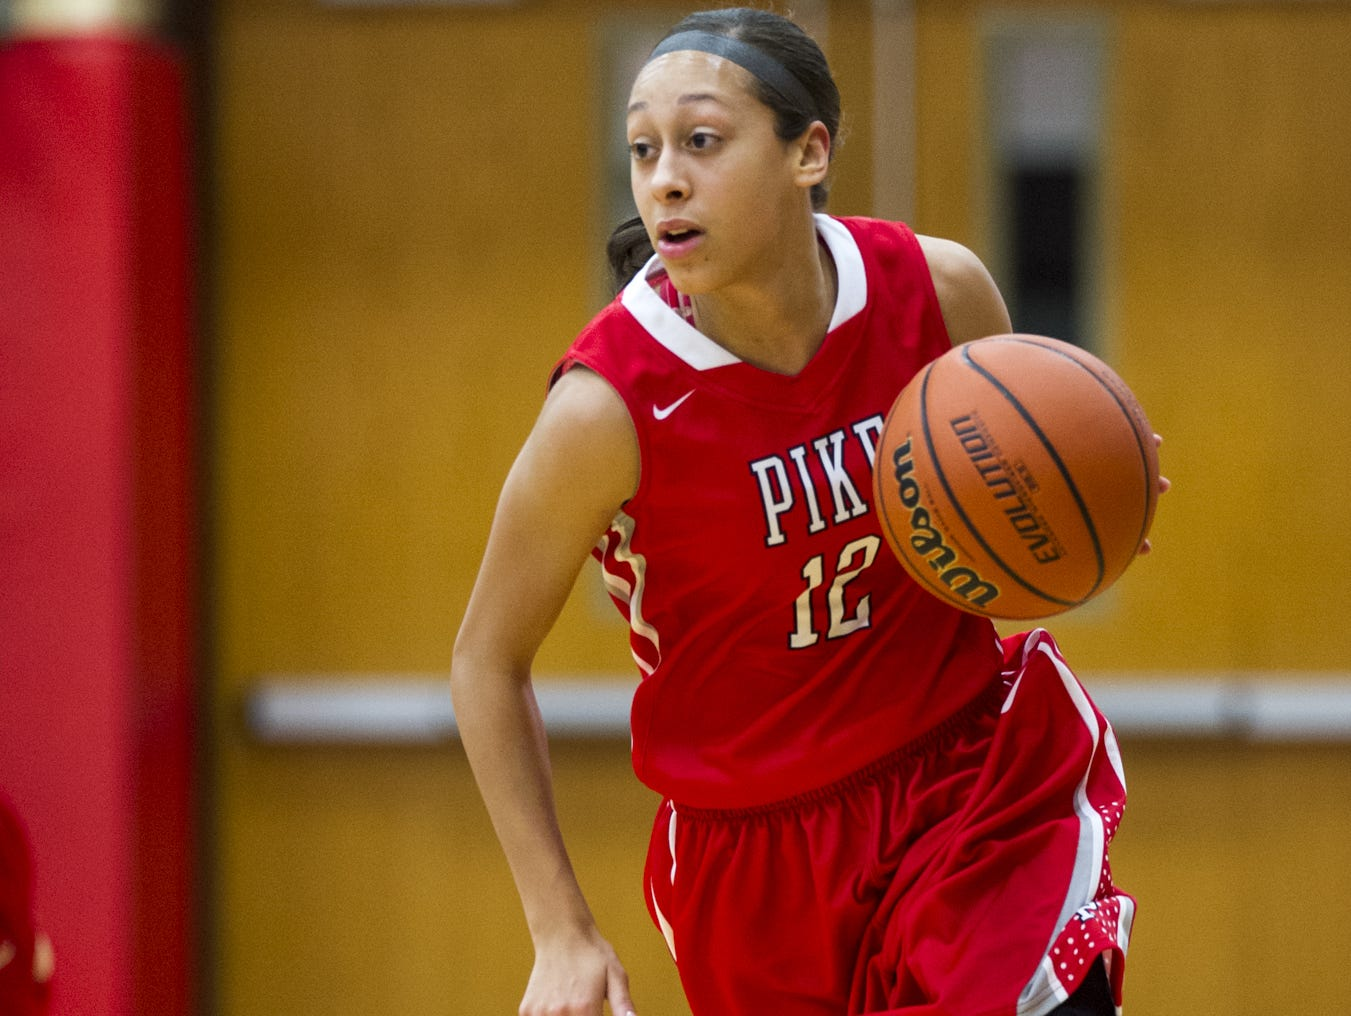 Pike High School senior Alyssa Clay (12) brings the ball up court after a rebound during first half action. Roncalli High School hosted Pike High School in girls' varsity basketball action, Saturday, Nov. 15, 2014.